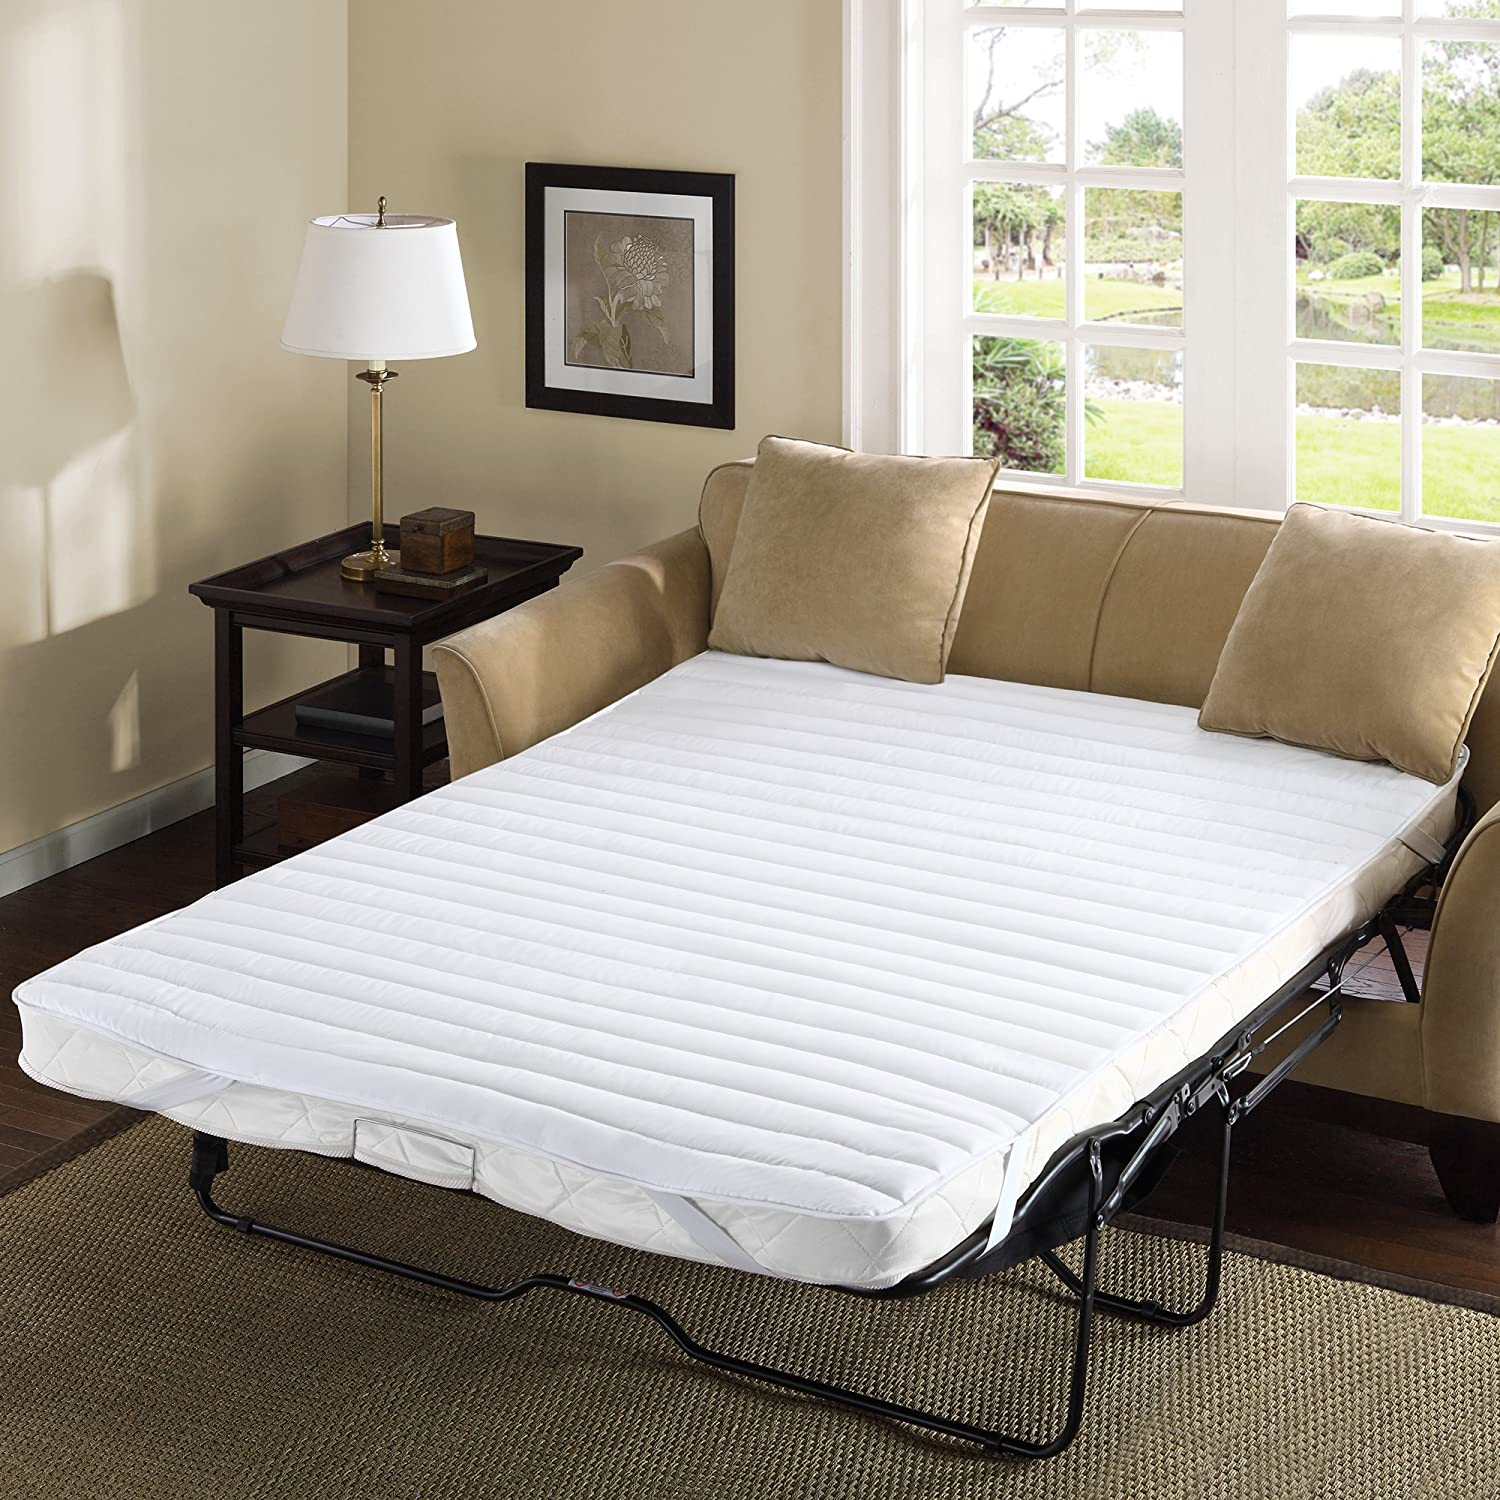 Awesome Madison Park Essentials Frisco Fine Microfiber Sofa Bed Cover Waterproof Mattress Protector Topper Full White Machost Co Dining Chair Design Ideas Machostcouk